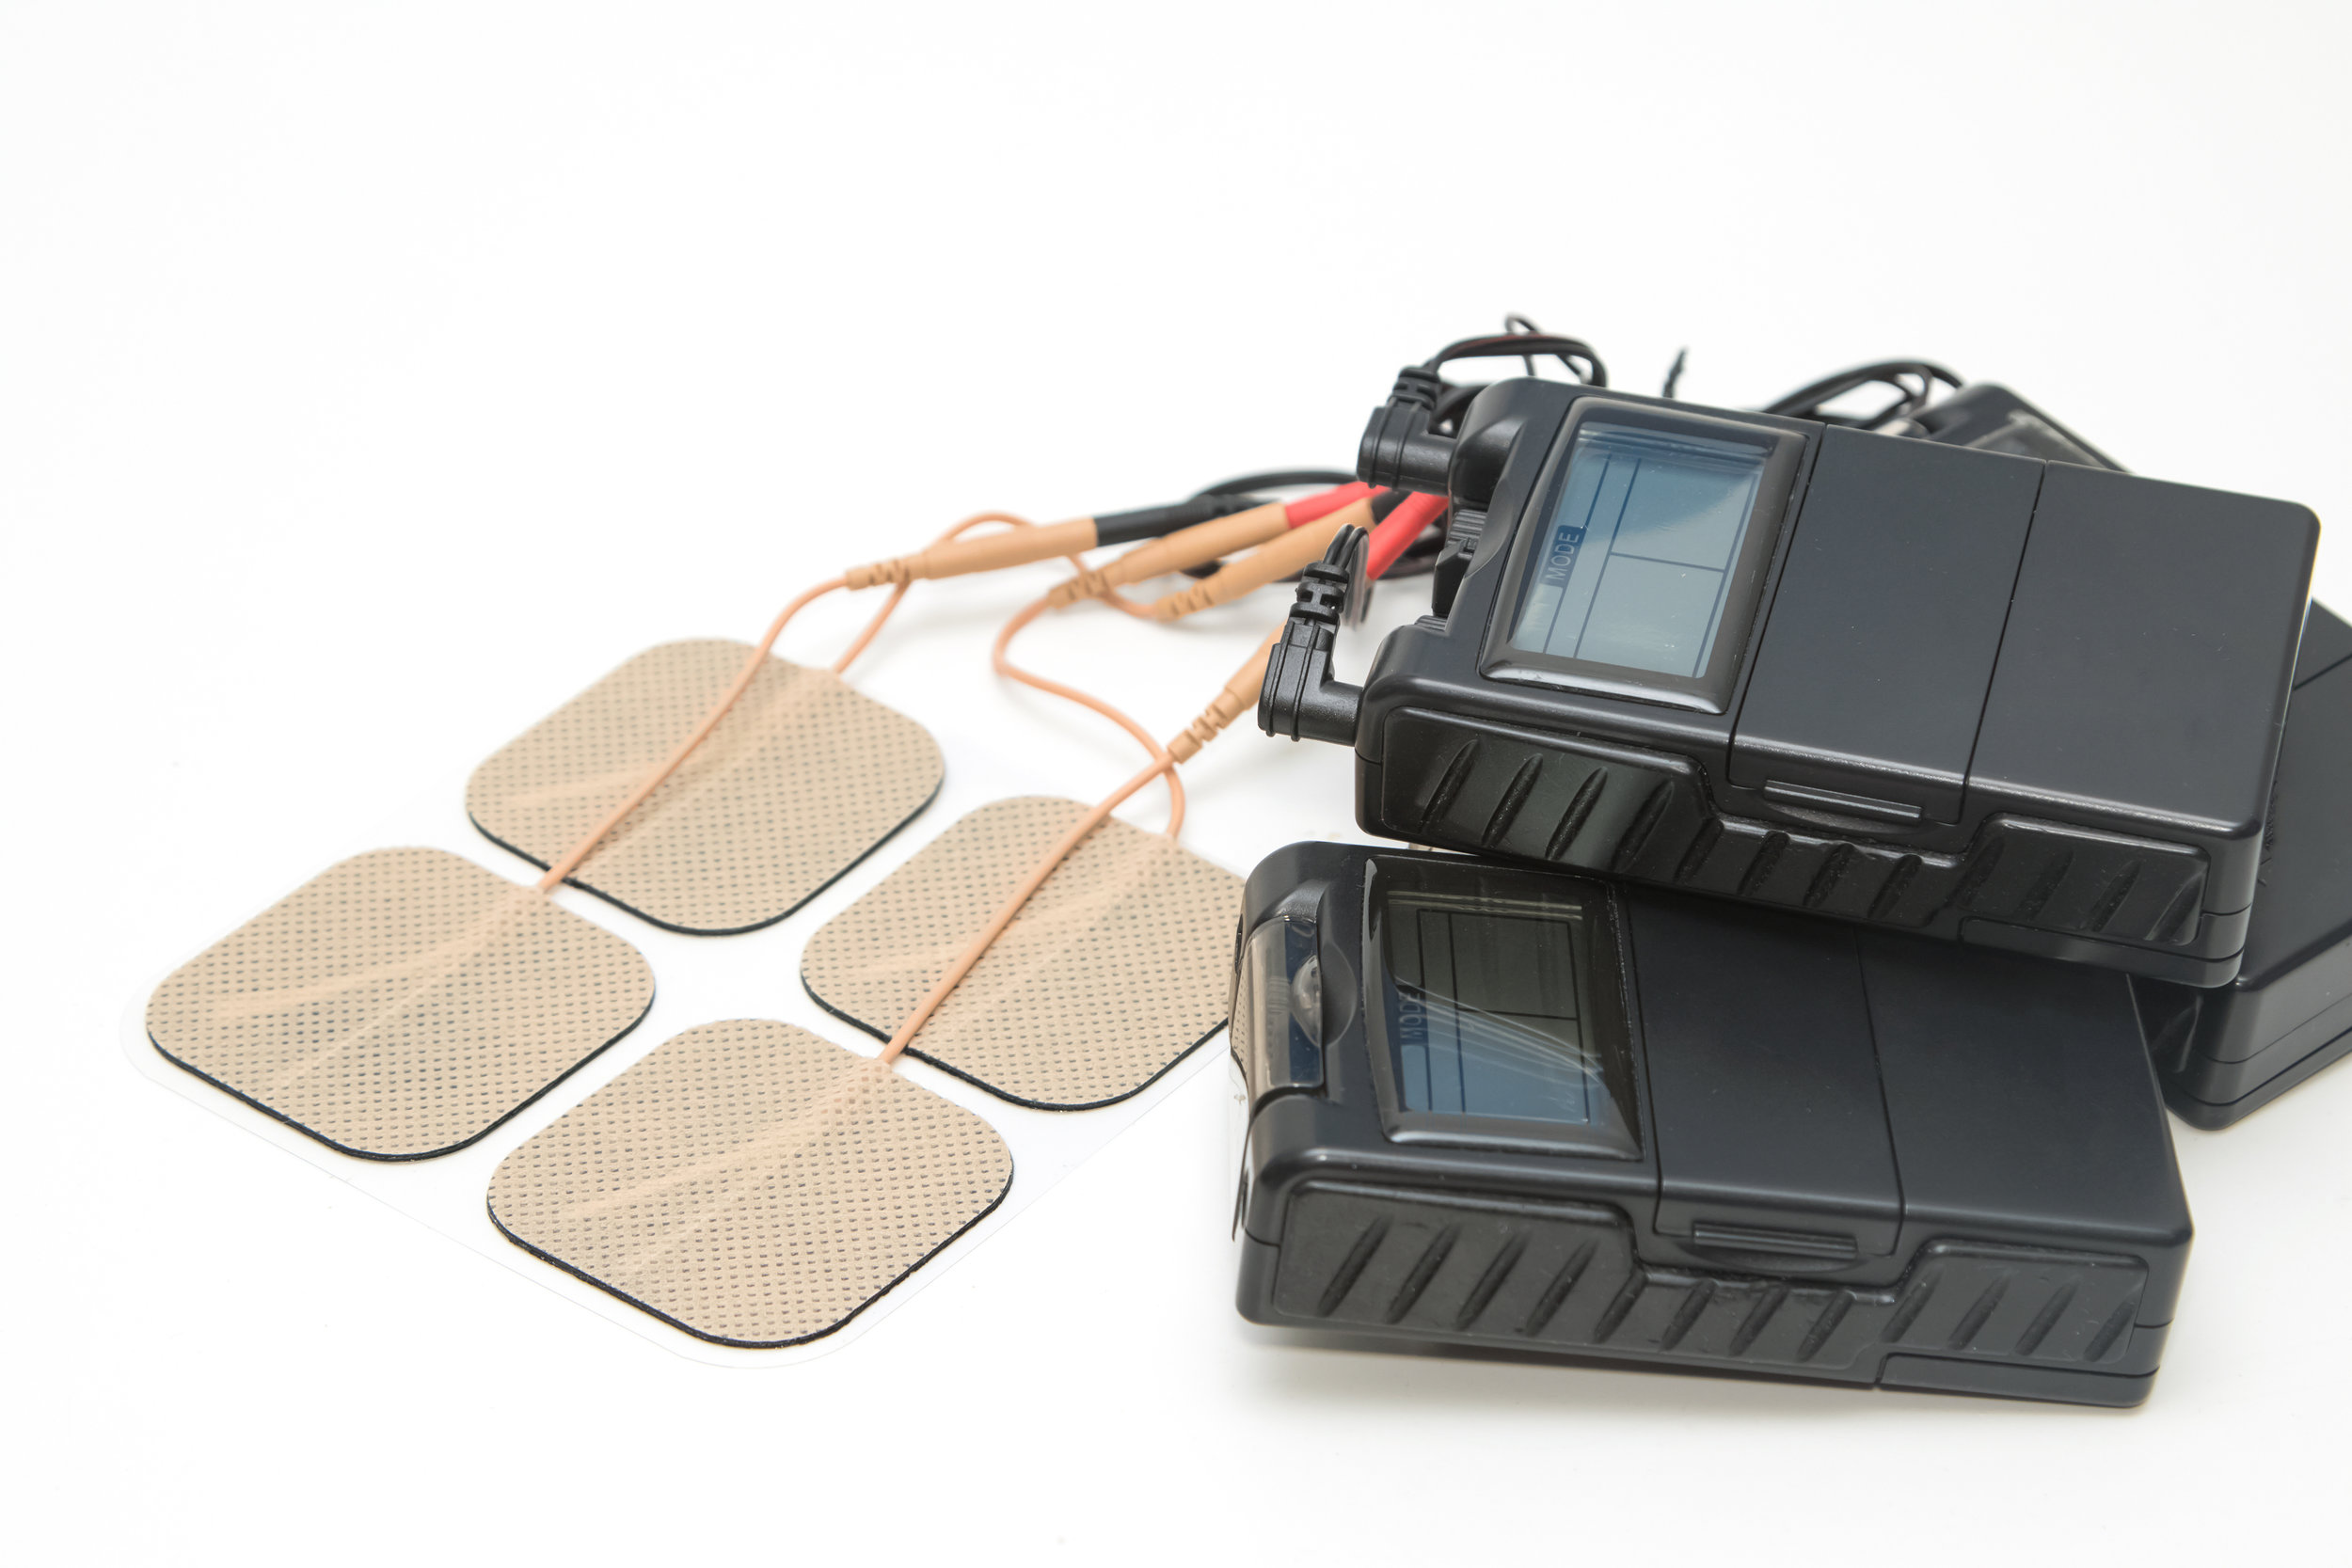 Electrotherapy - Many different types of electrotherapy modalities are available. Neuromuscular Electrical Stimulation (NMES) uses electrical stimulation to elicit muscle contraction by stimulating muscle fiber activity. NMES is useful in stimulating weak and atrophied muscle post-surgery or in the management of neurological cases. Transcutaneous Electrical Stimulation (TENS) works to reduce both acute and chronic pain. How TENS works will depend on the specific settings chosen by the physiotherapist.